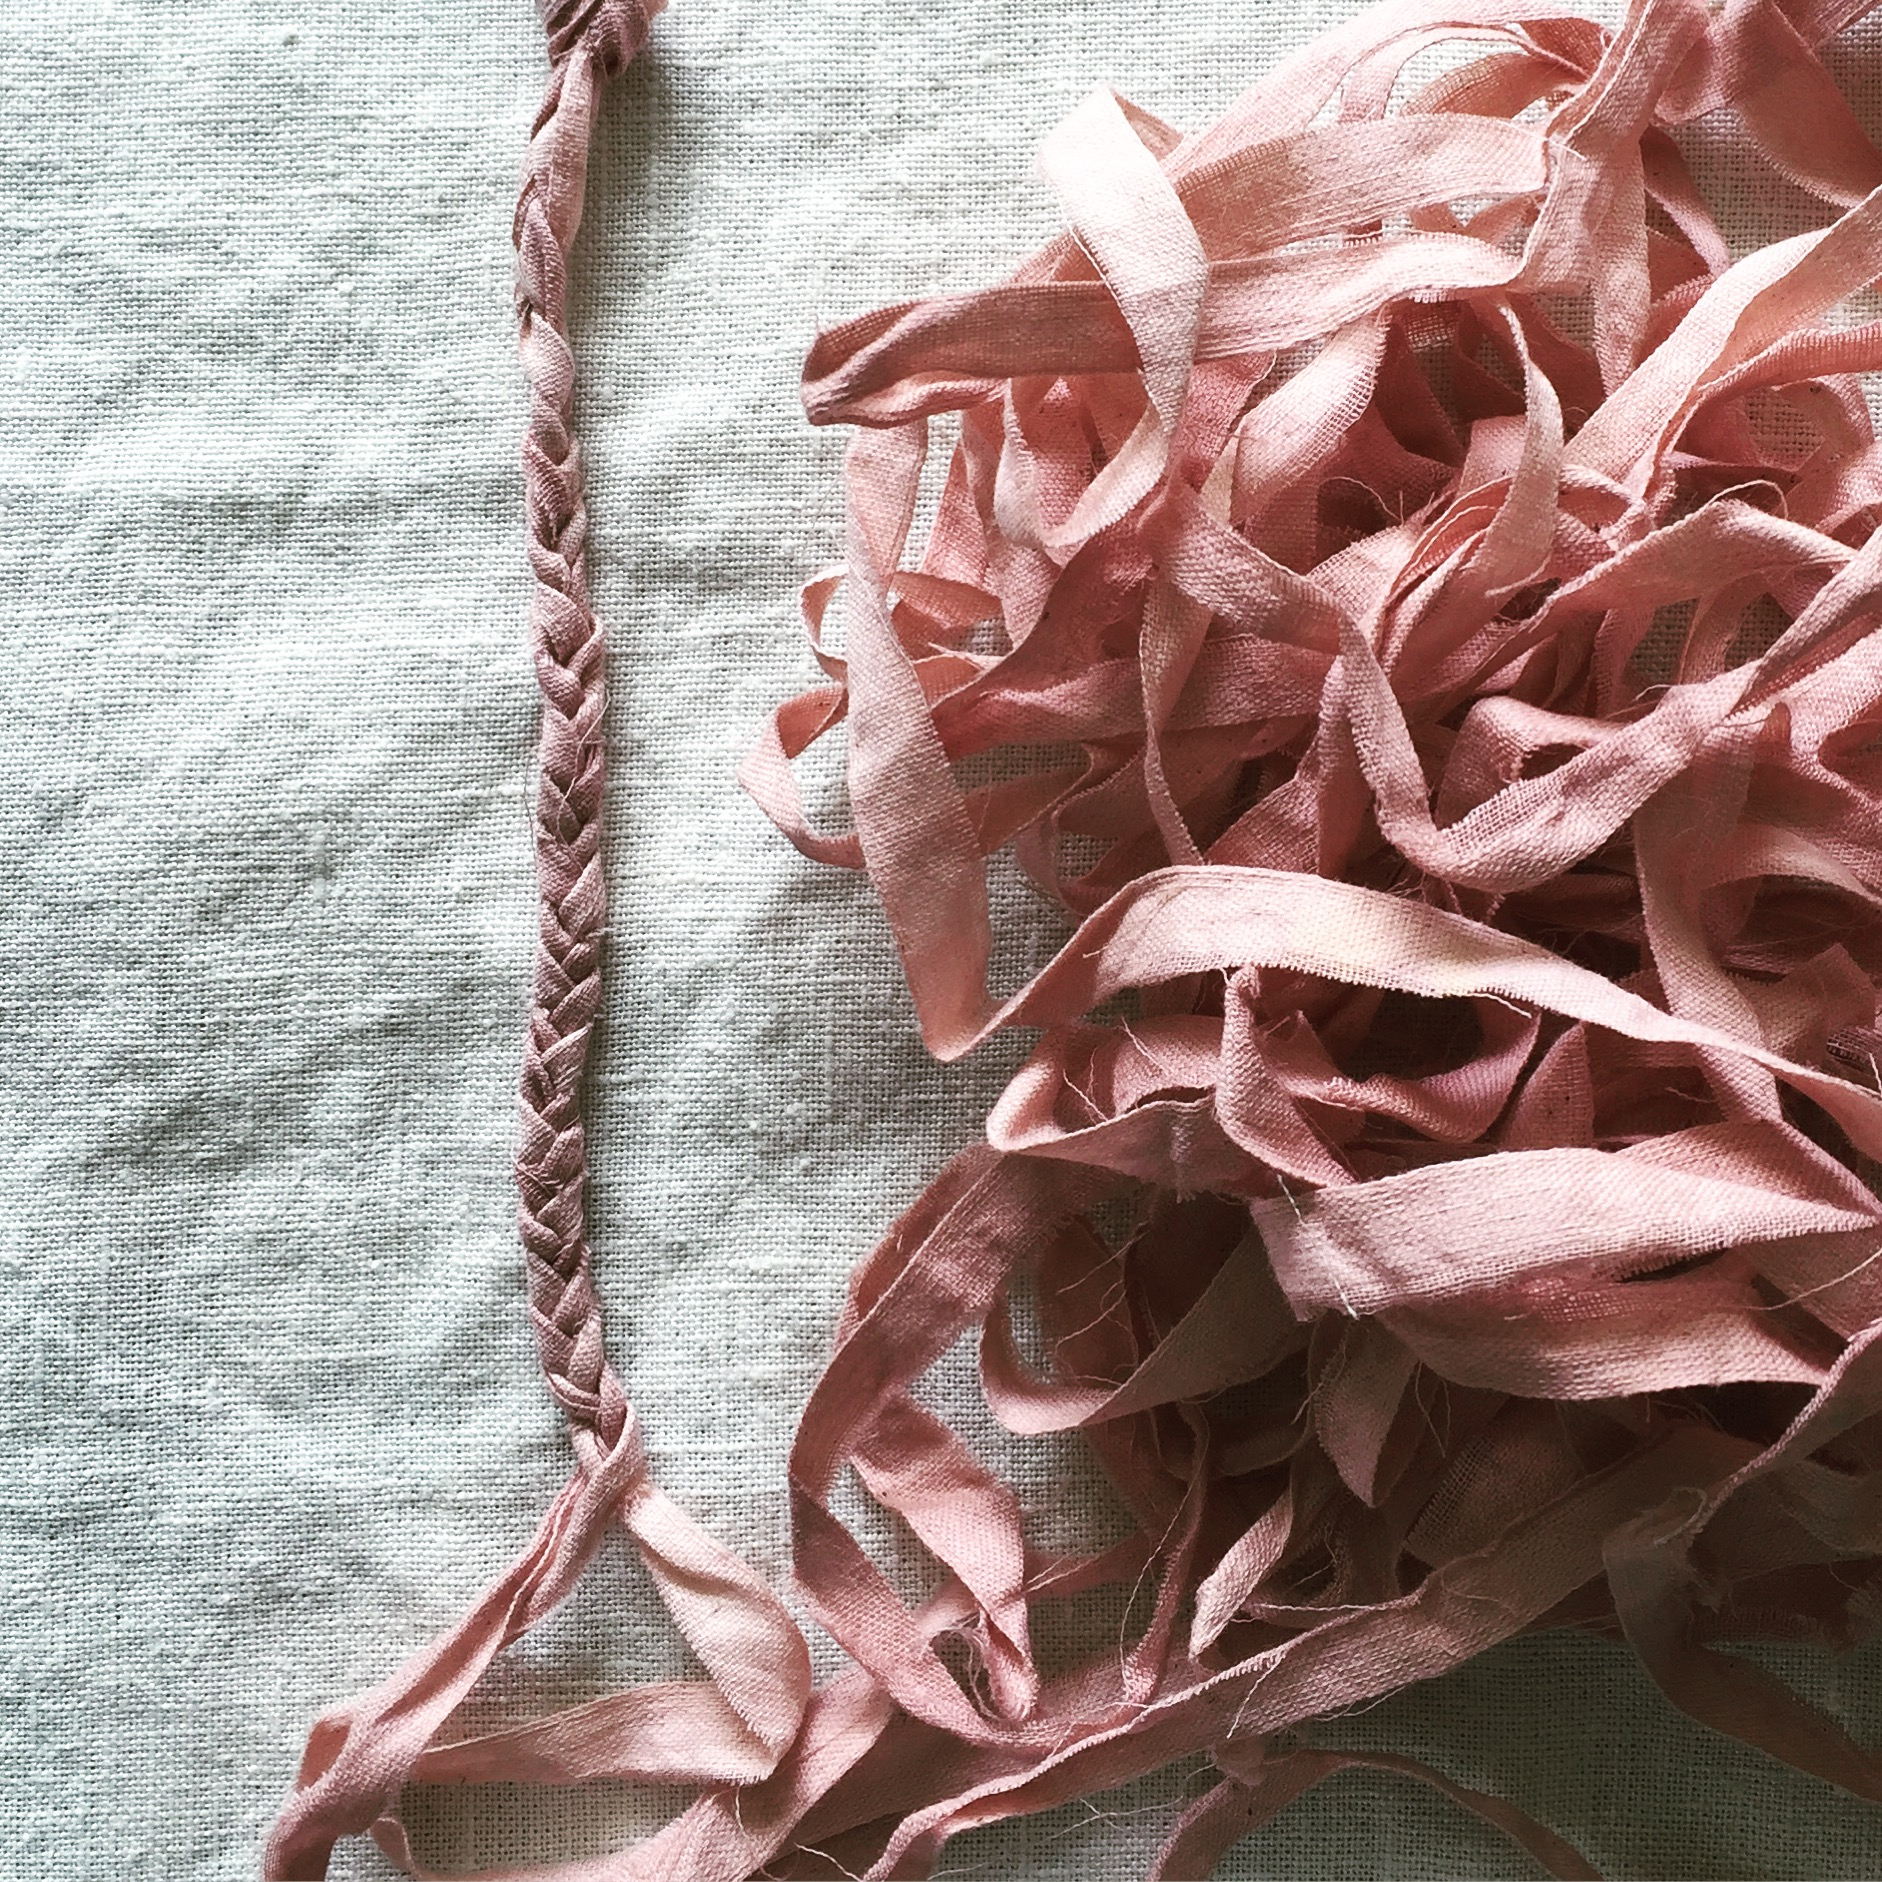 organic cotton naturally dyed with Madder Root